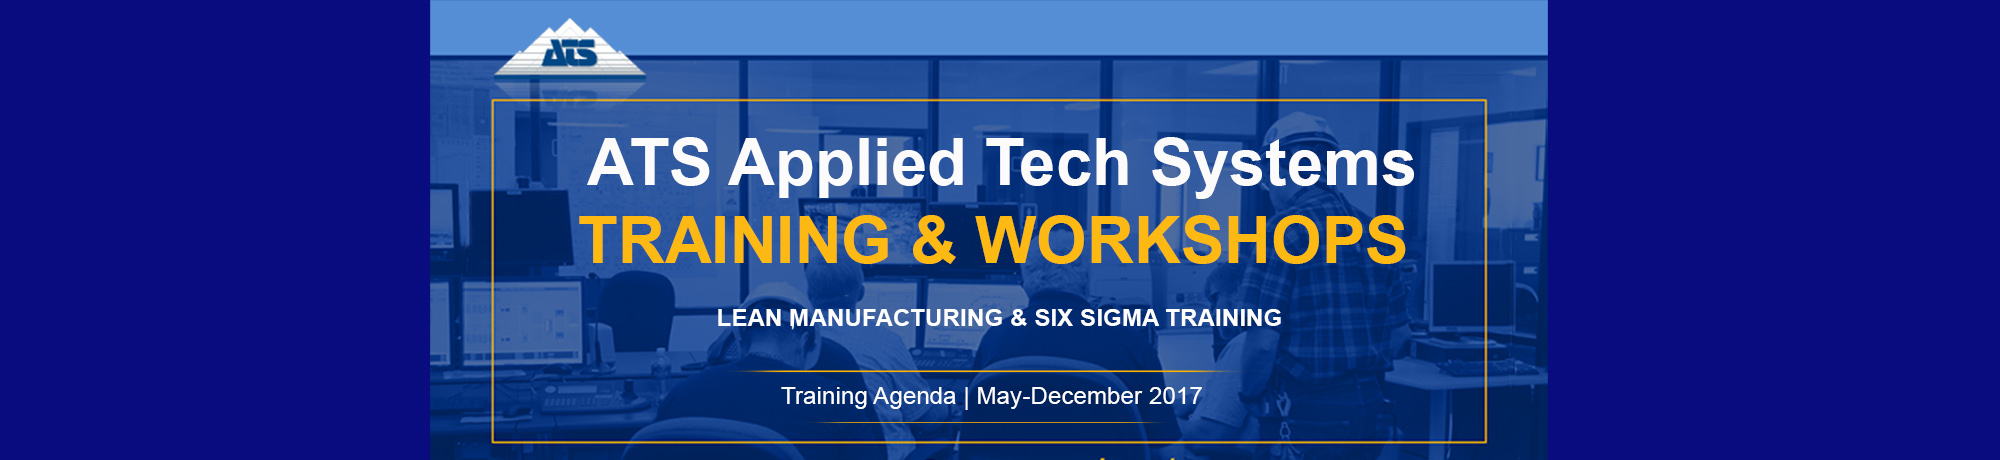 ATS Applied Tech Systems Training - Lean Manufacturing & Six Sigma Training